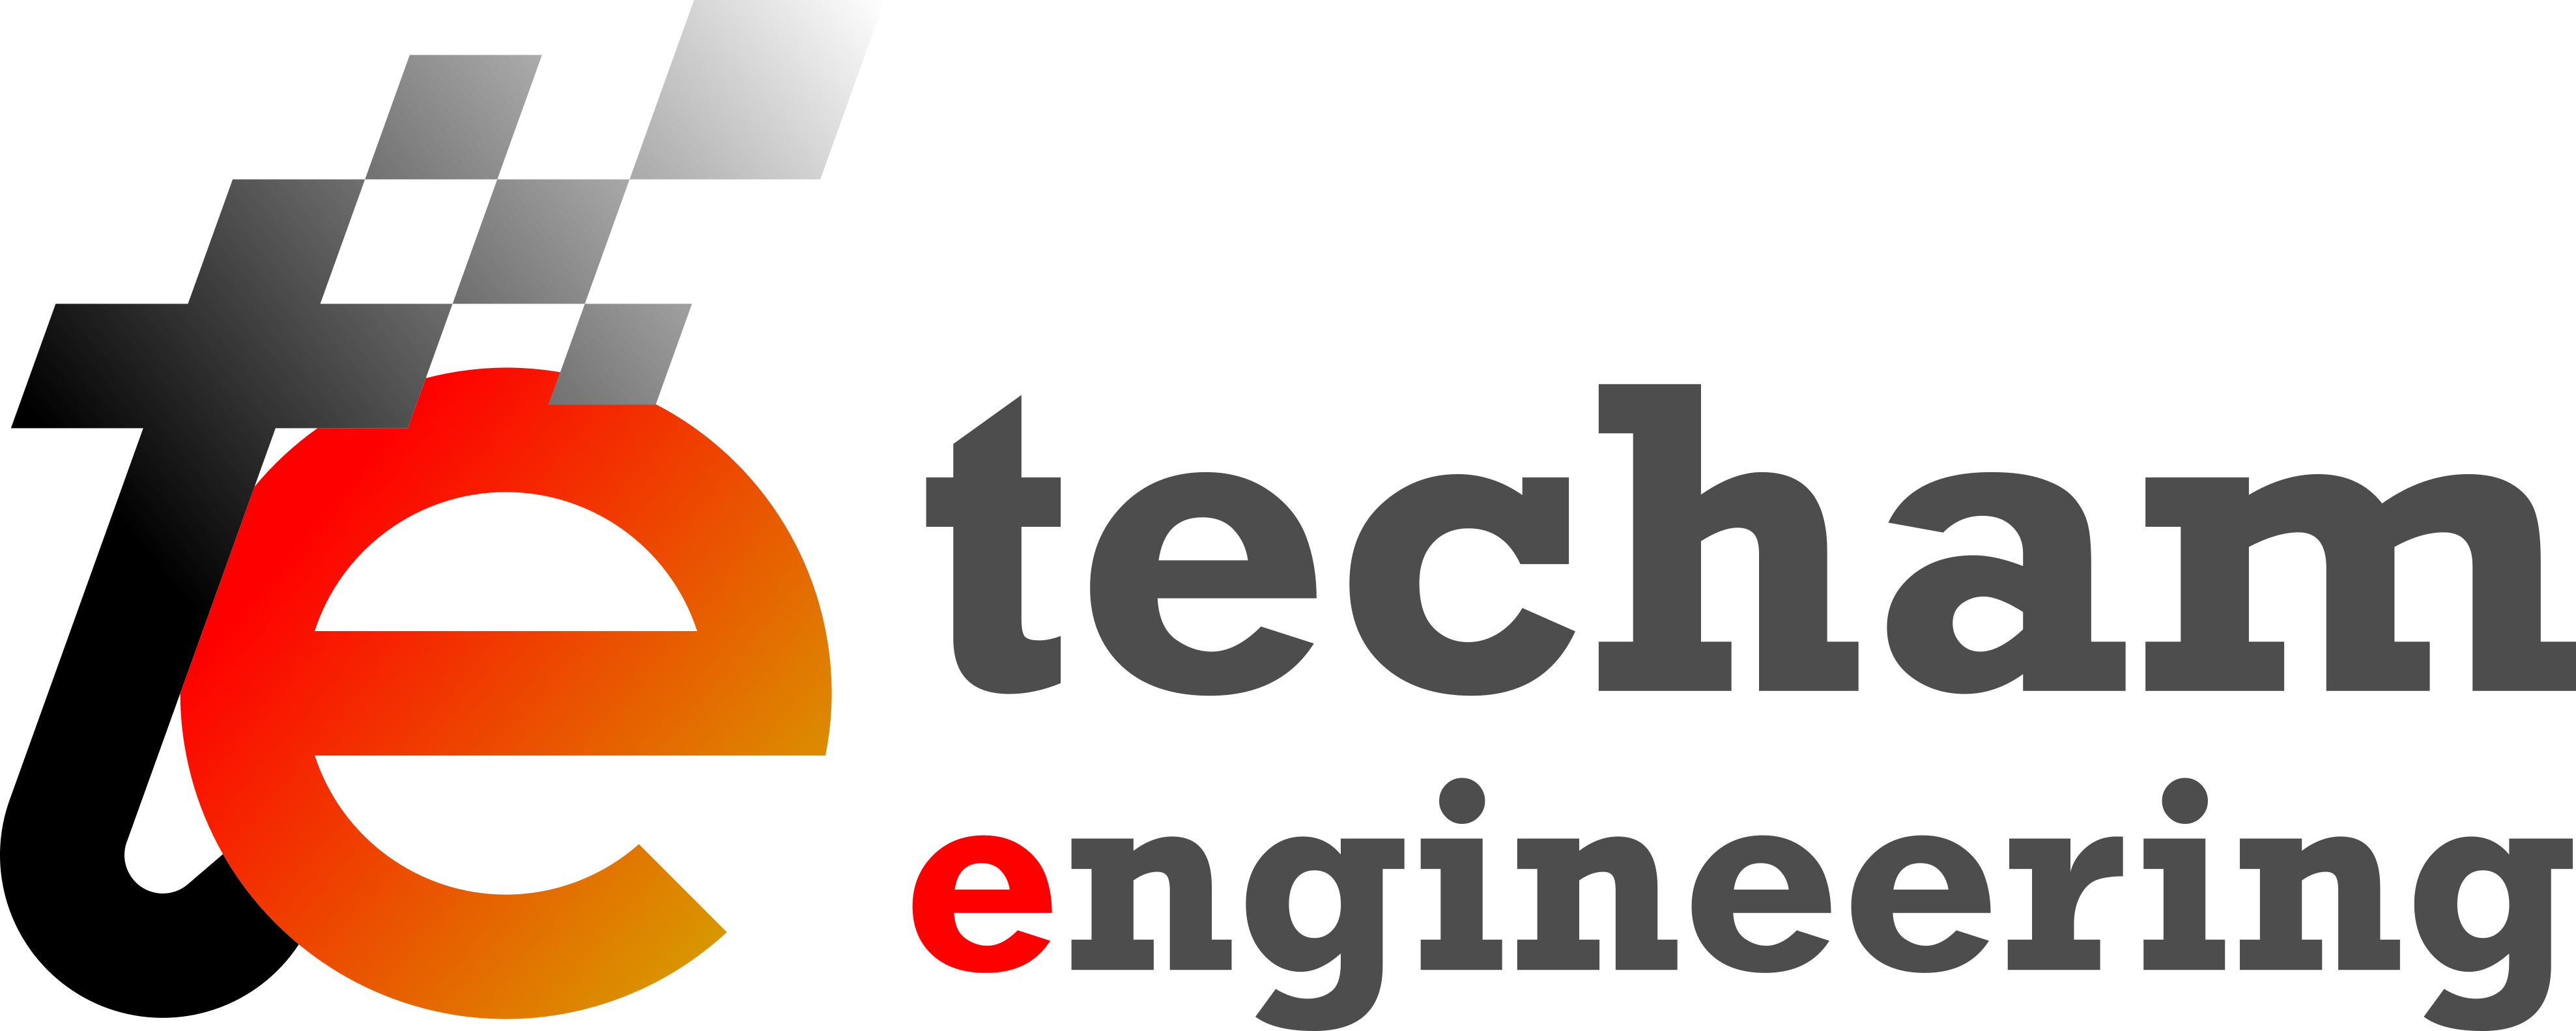 techam-engineering